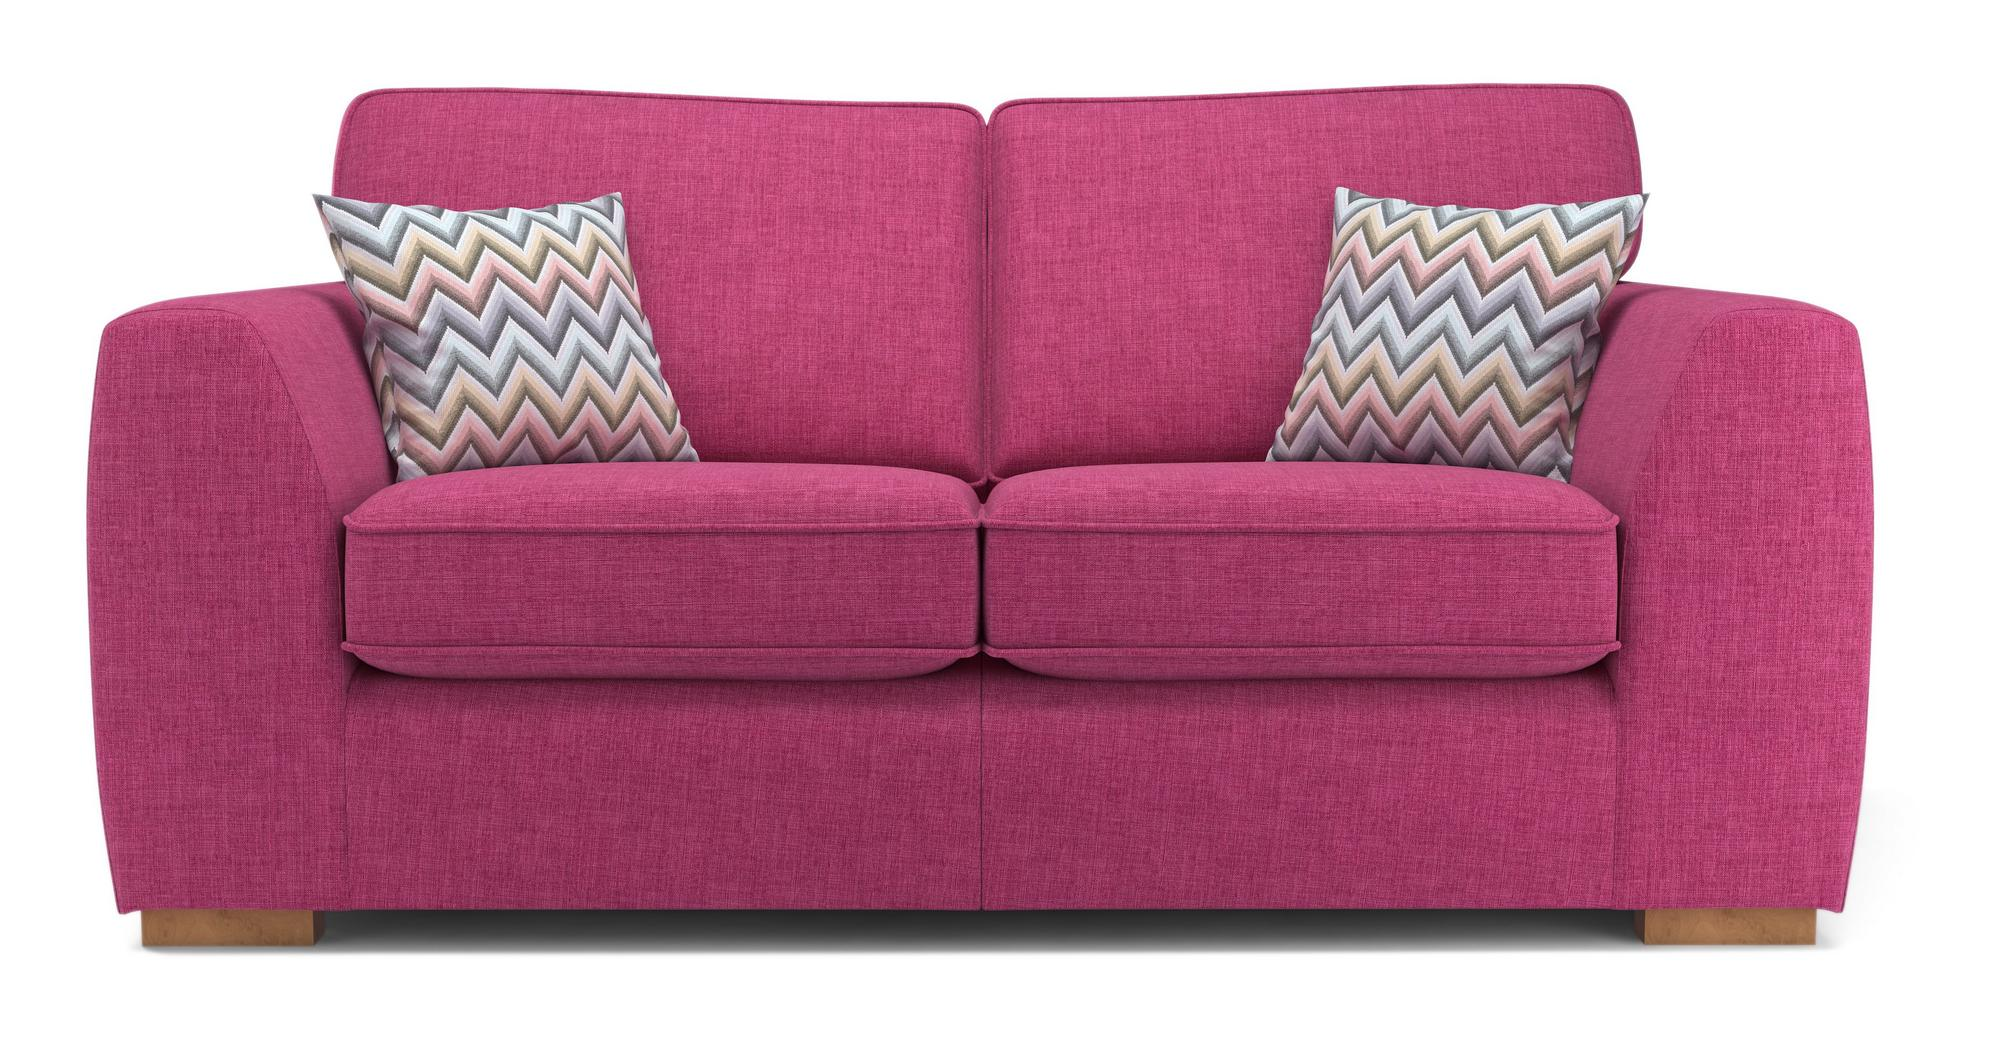 Dfs Revive Orchid Fabric 2 Seater Sofa Bed 141535 Ebay